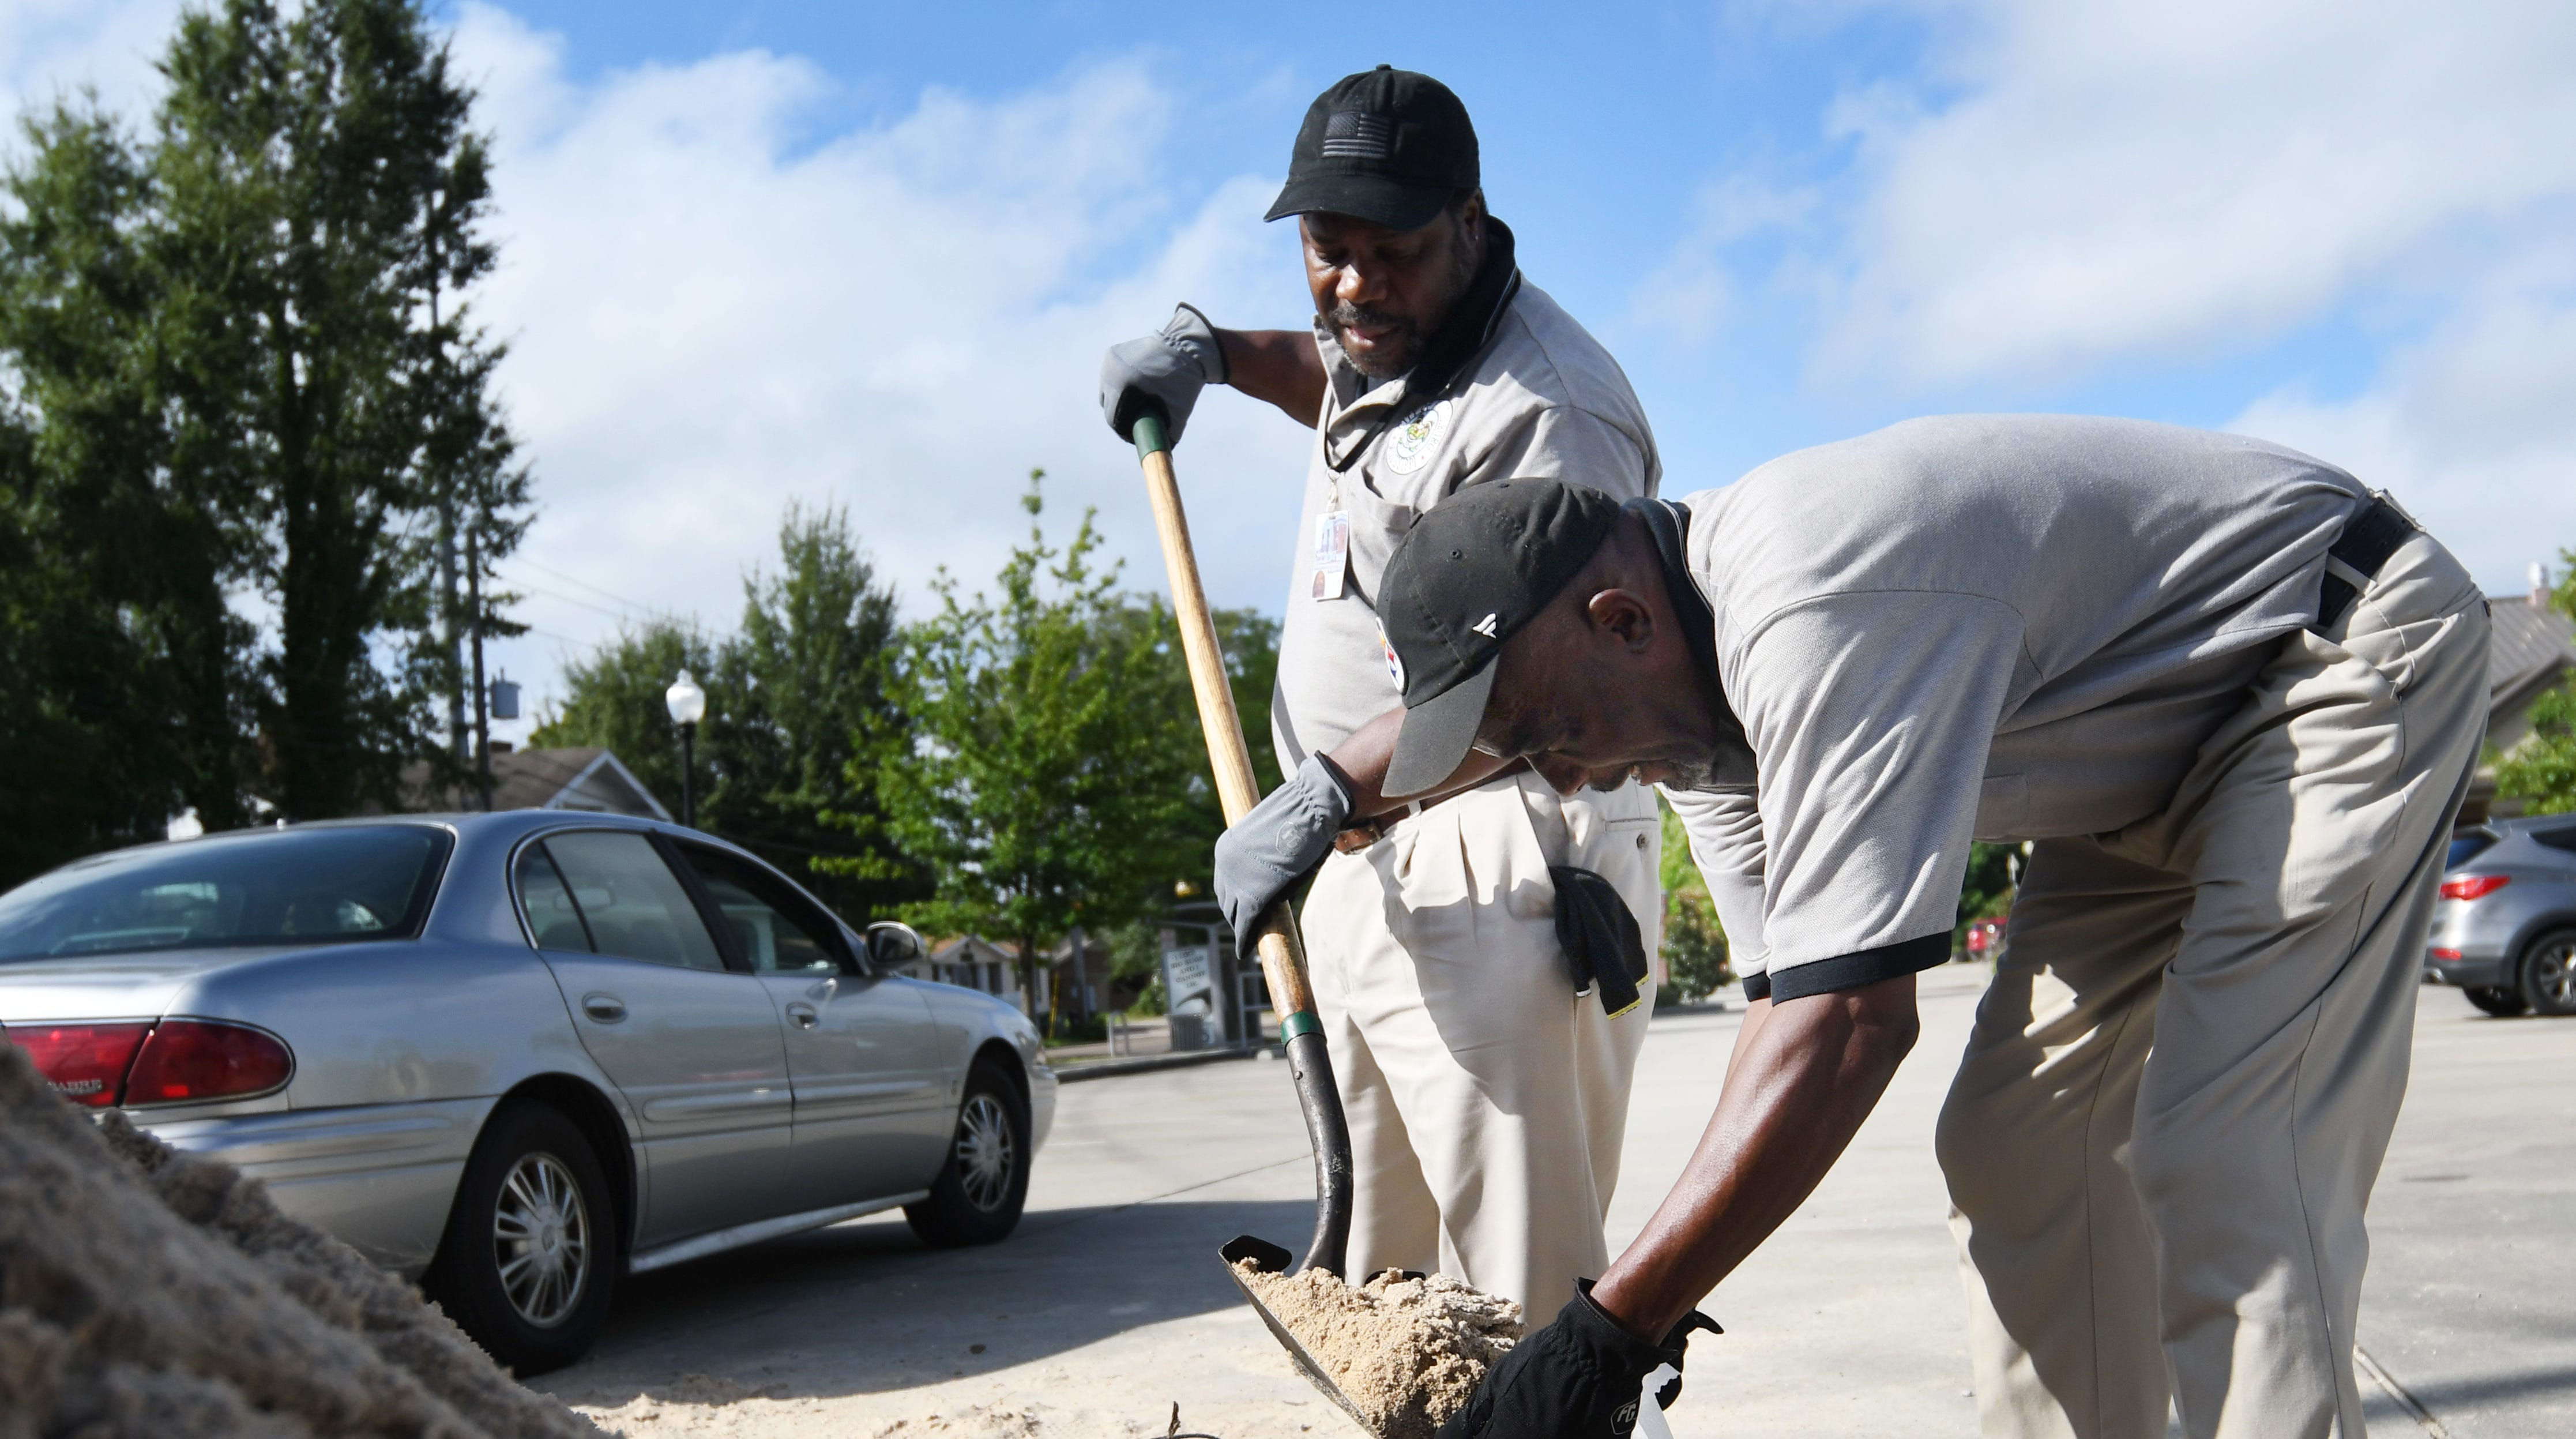 City of Hattiesburg Parks and Recreational employees Michael Means, left and Jay Hester, right, bag sand in preparation of Tropical Storm Gordon on Tuesday, September 4, 2018.